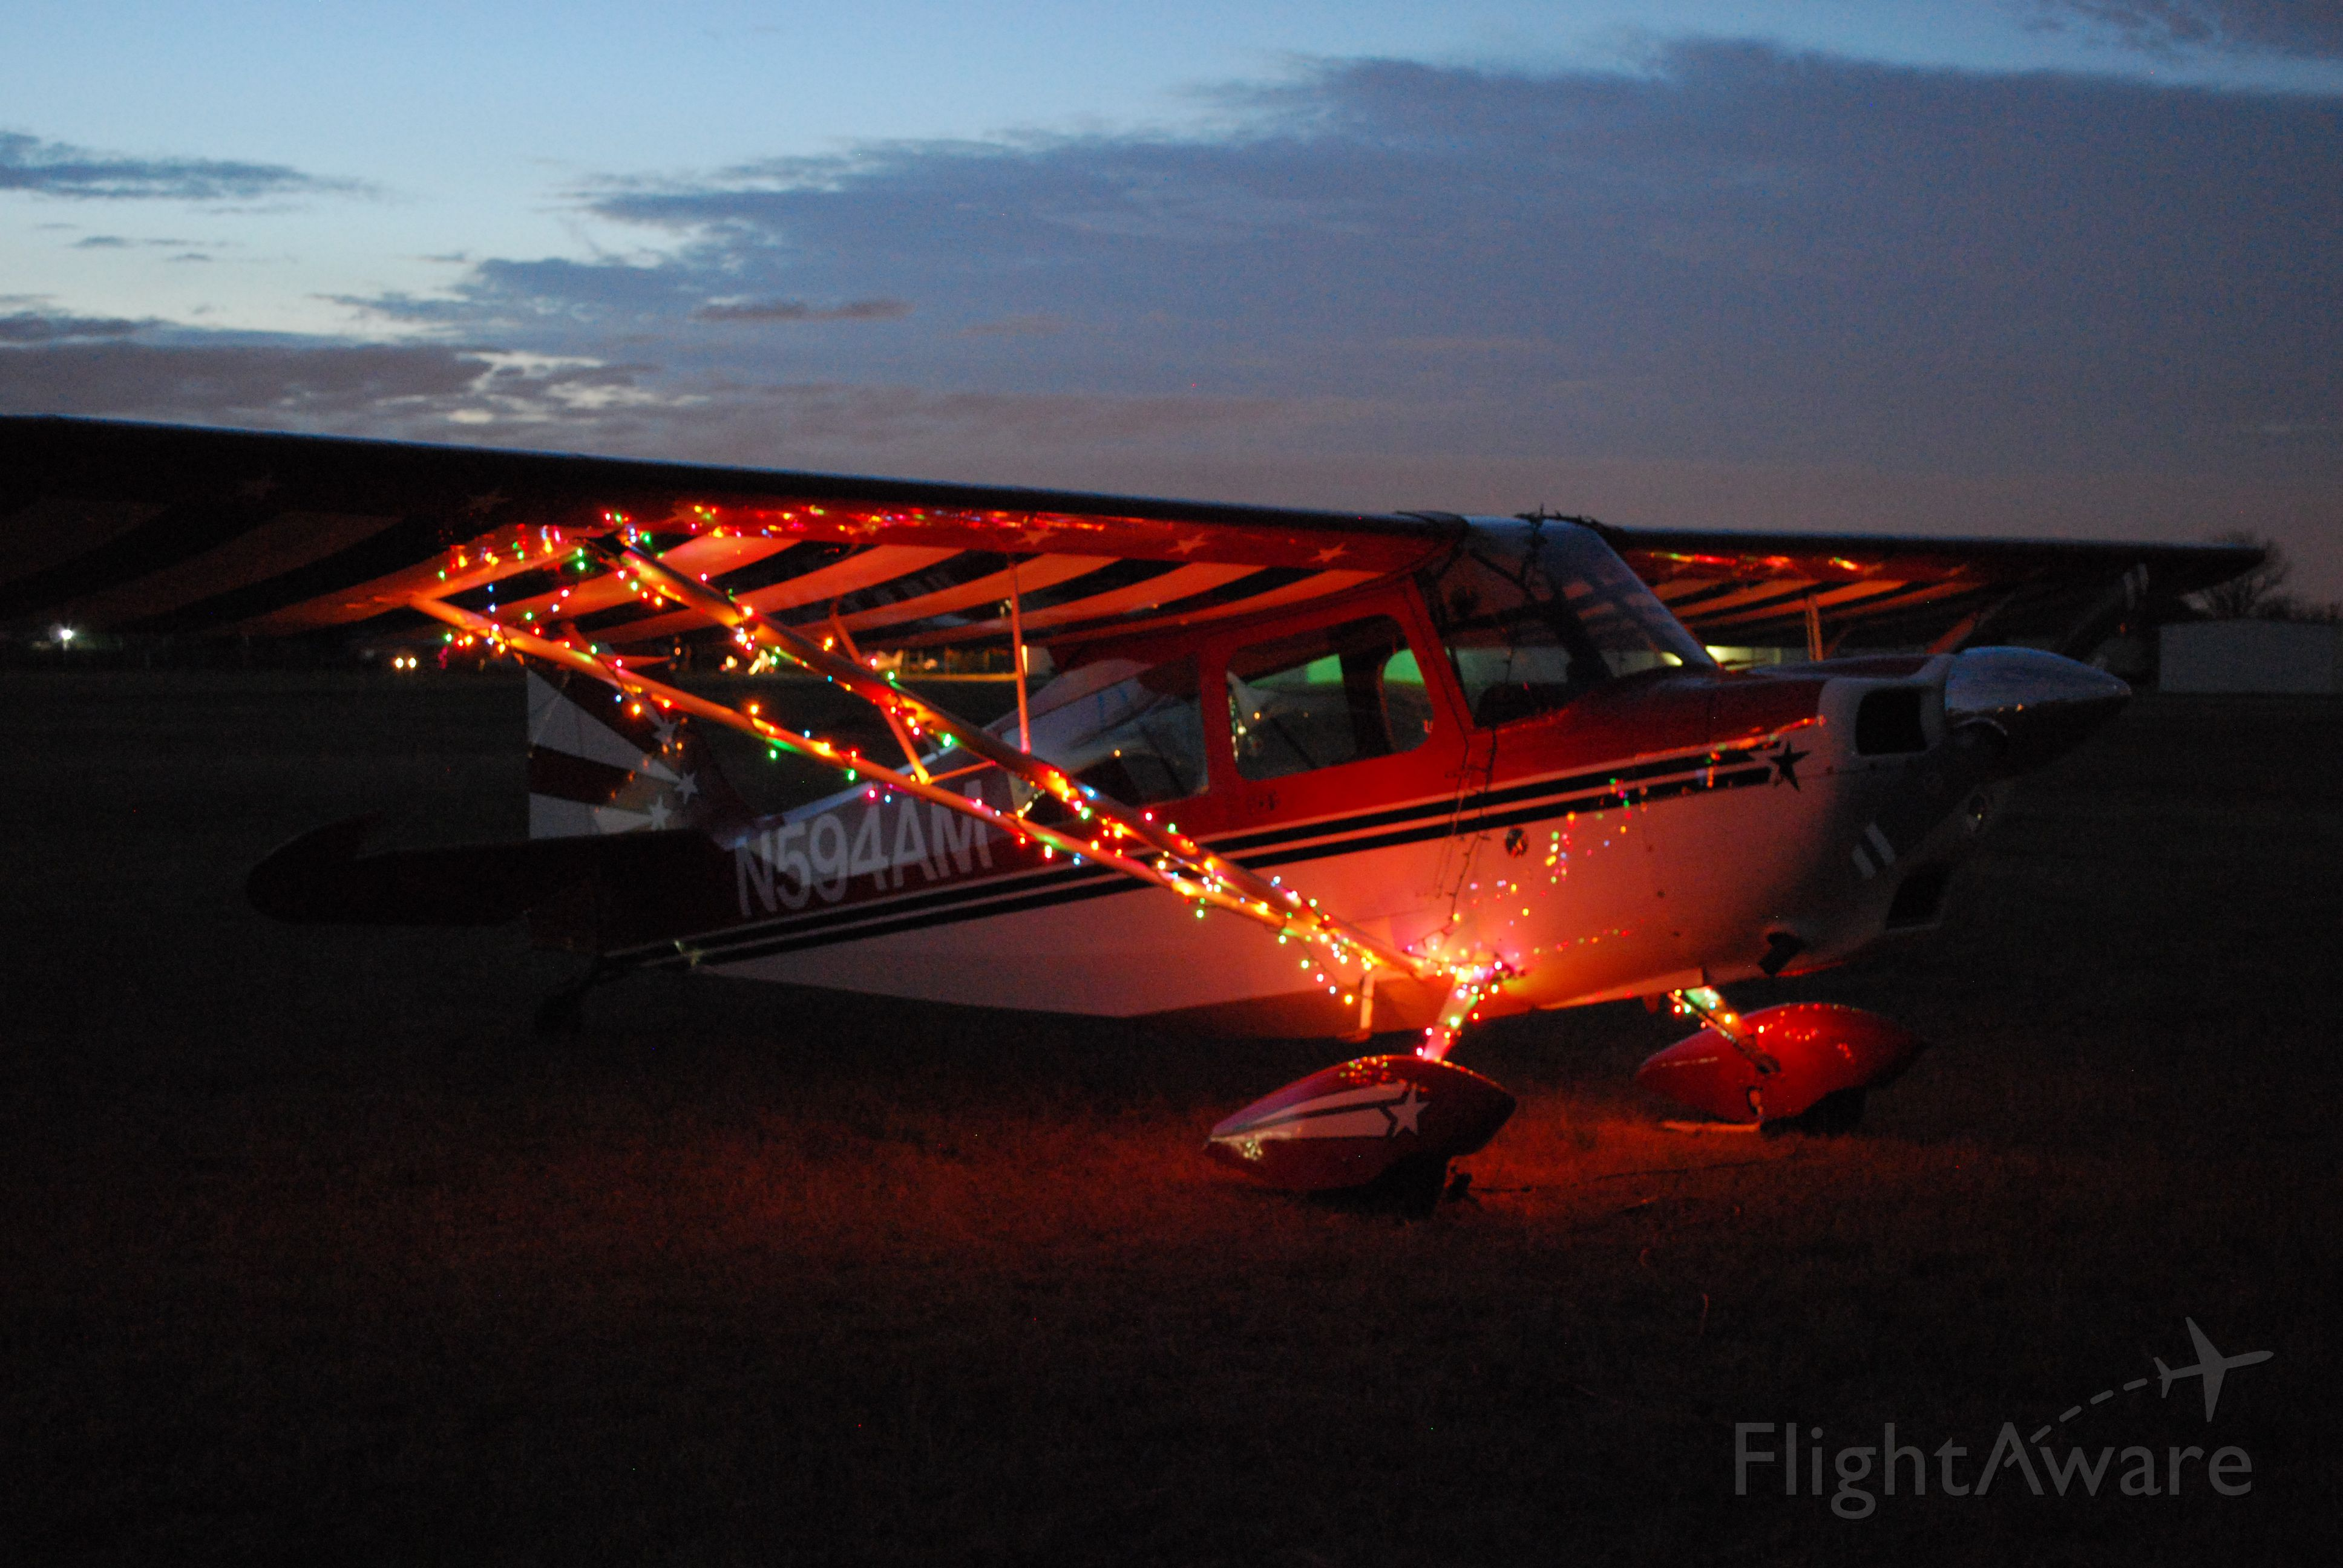 CHAMPION Decathlon (N594AM) - There is something magical about the glow of Christmas lights- add to it the magic and fun of a Decathlon, and visions of thrills will be dancing in pilots